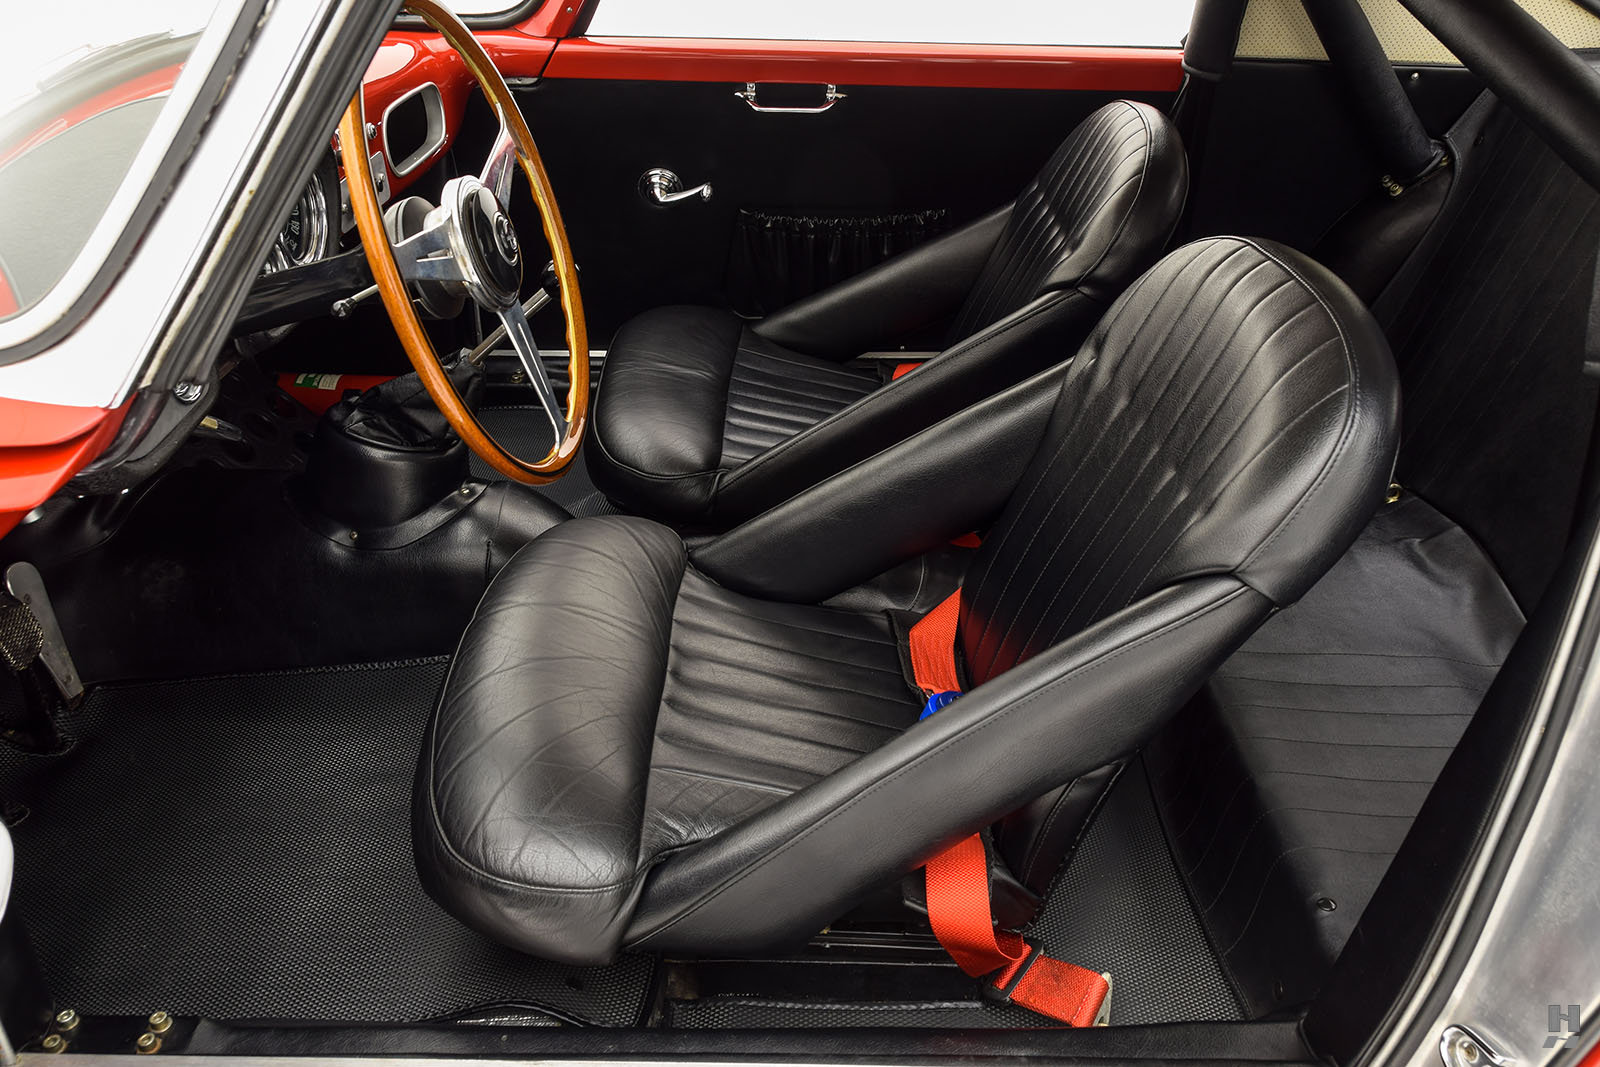 1957 ALFA ROMEO 1900 CSS COUPE For Sale (picture 3 of 6)